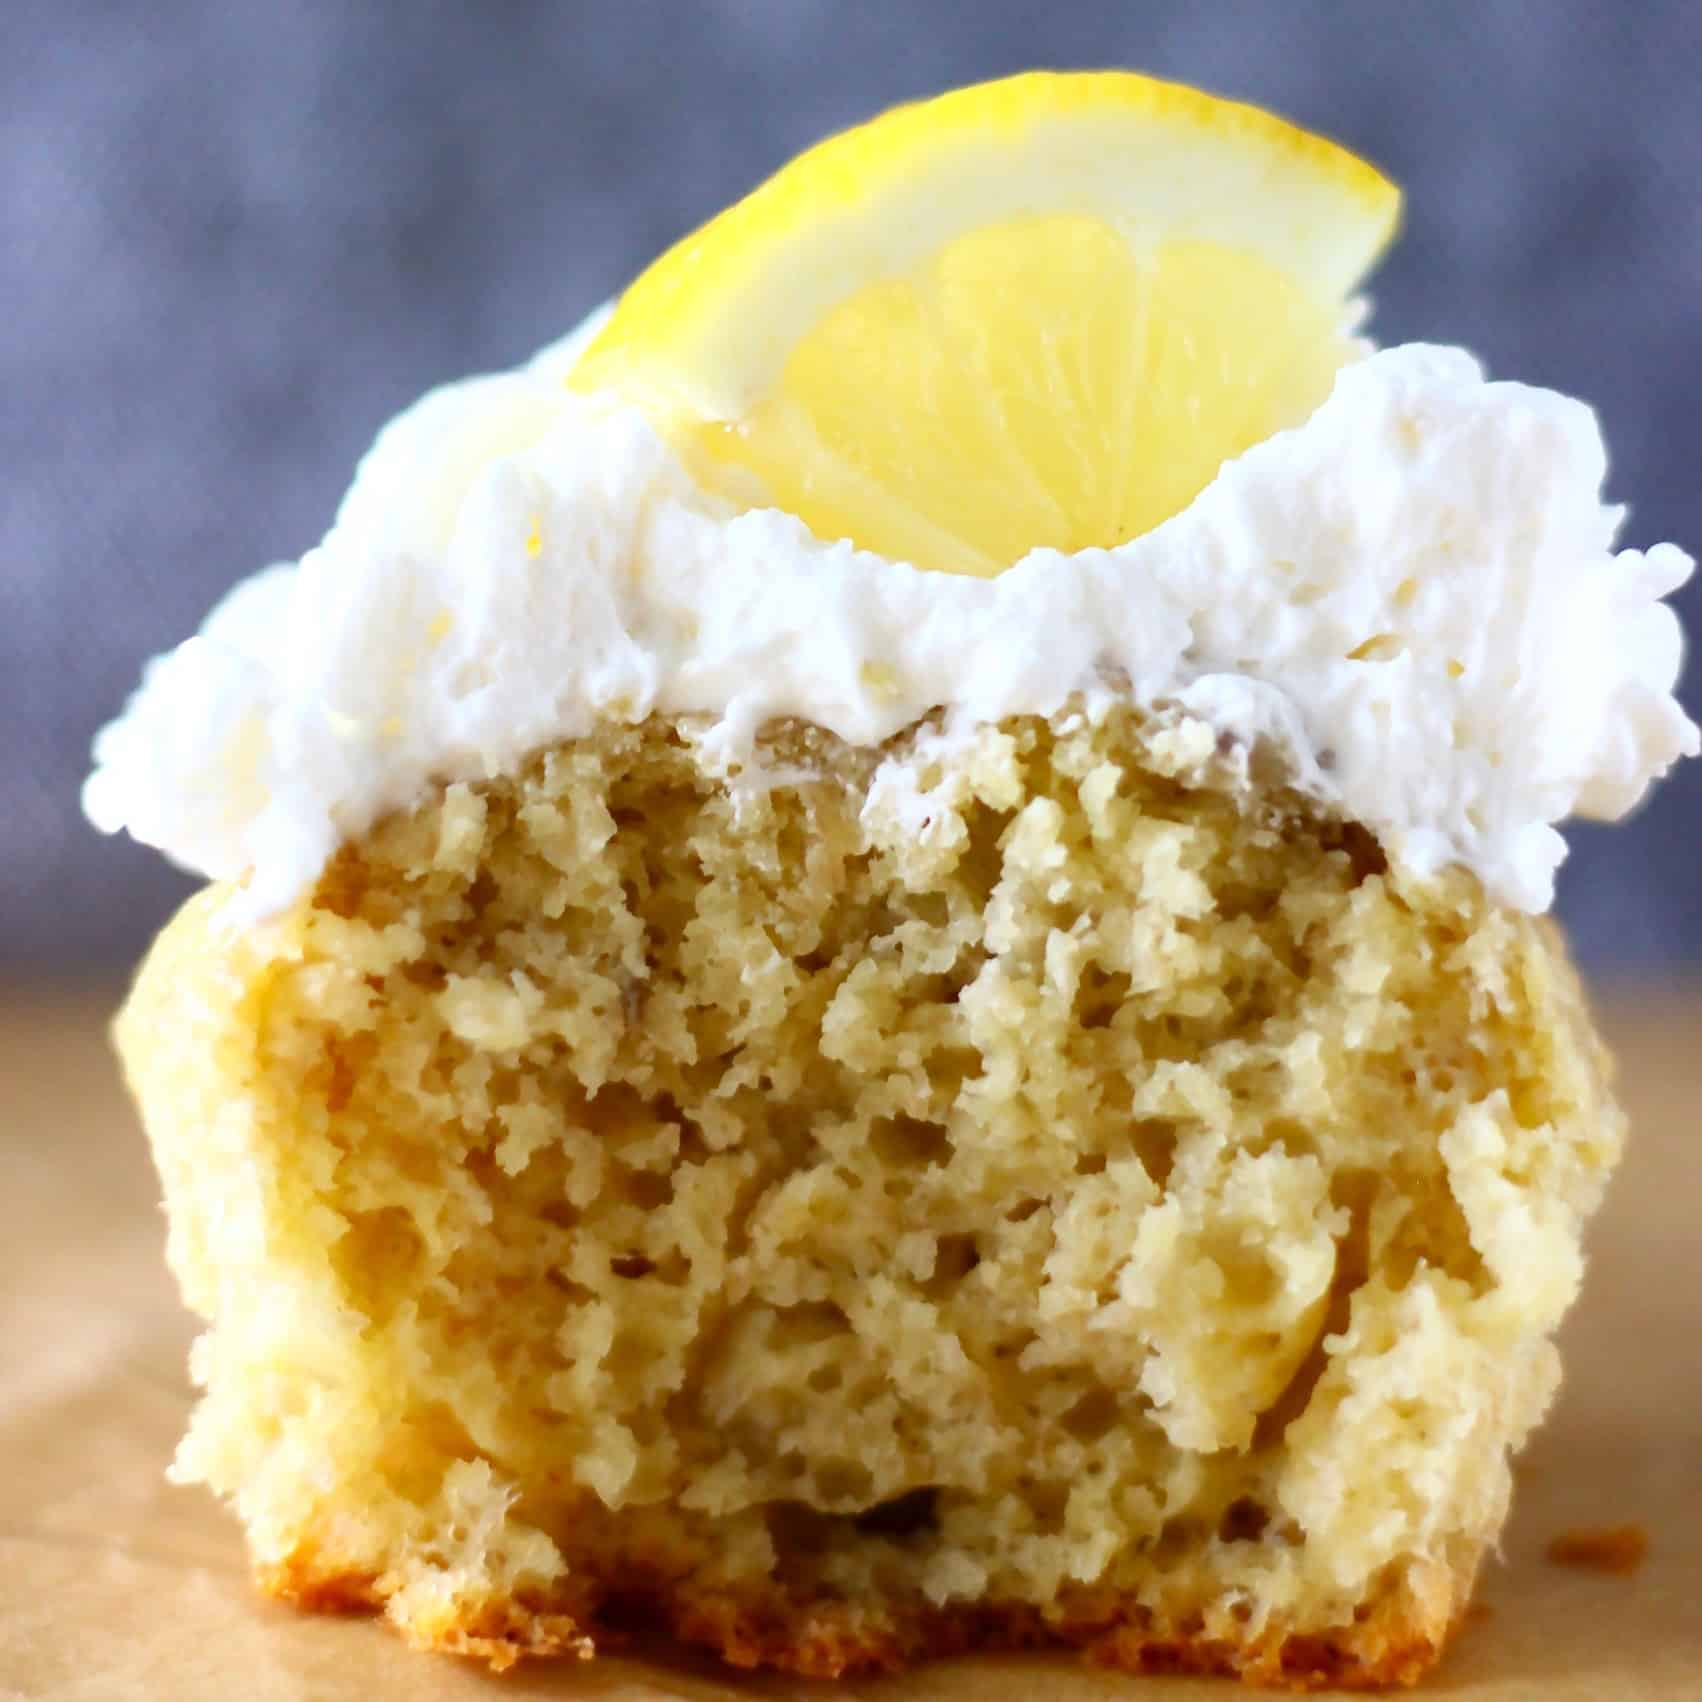 "These Gluten-Free Vegan Lemon Cupcakes are the perfect simple yet elegant dessert: they're sweet and tangy, and smothered in a rich ""cream cheese"" frosting! They're also egg-free, refined sugar free and nut-free optional. #vegan #glutenfree #dairyfree #lemon #cupcakes #dessert #baking"